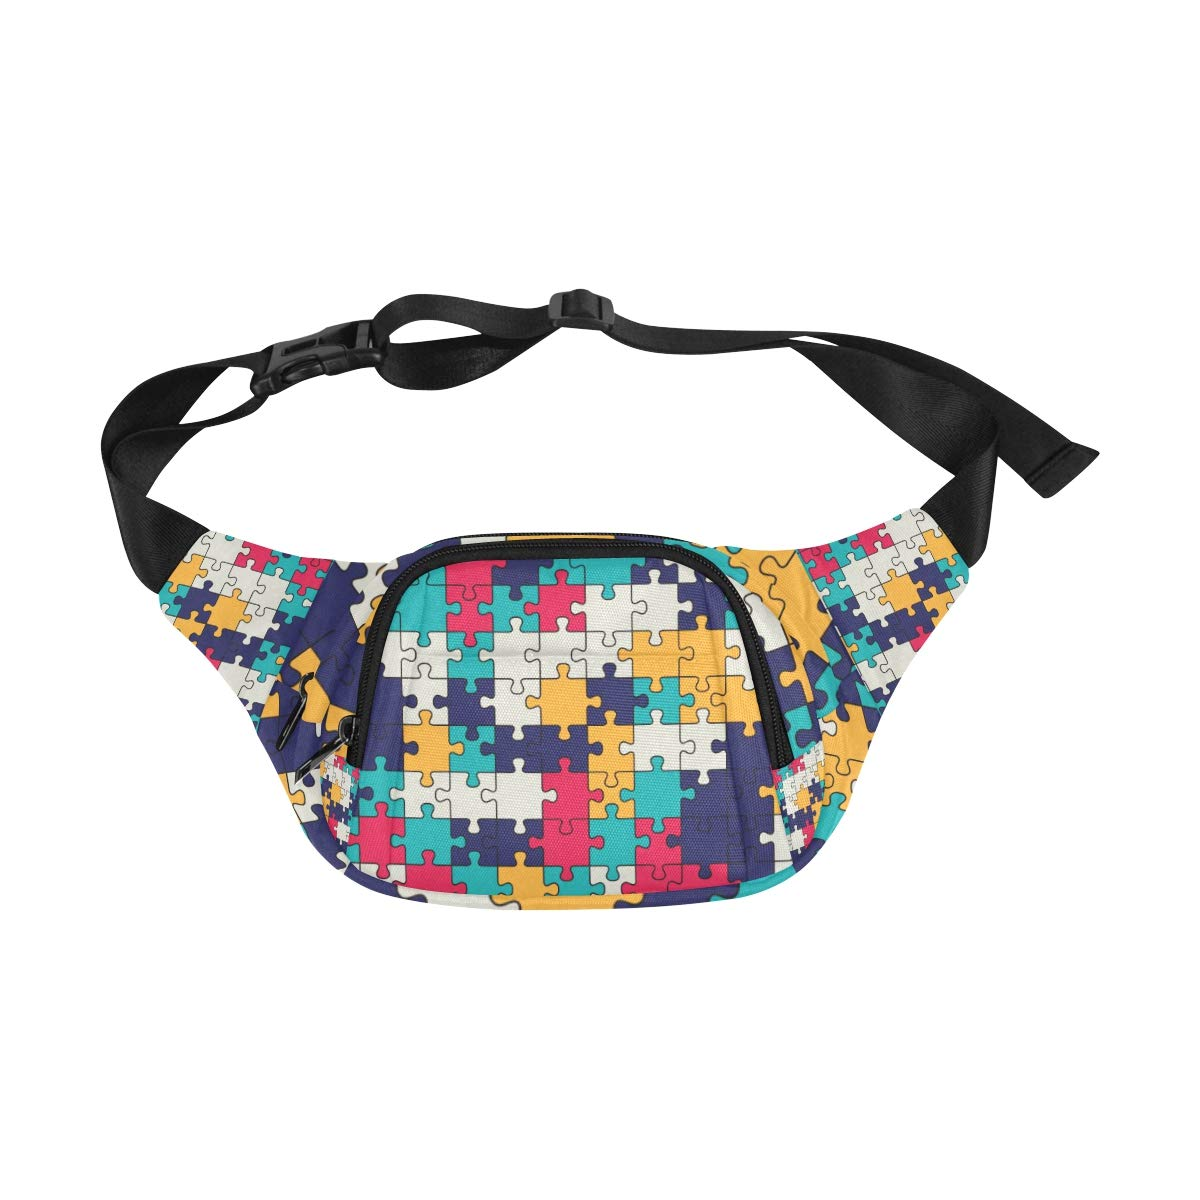 Colorful Shiny Puzzle Hobby Activity Fenny Packs Waist Bags Adjustable Belt Waterproof Nylon Travel Running Sport Vacation Party For Men Women Boys Girls Kids